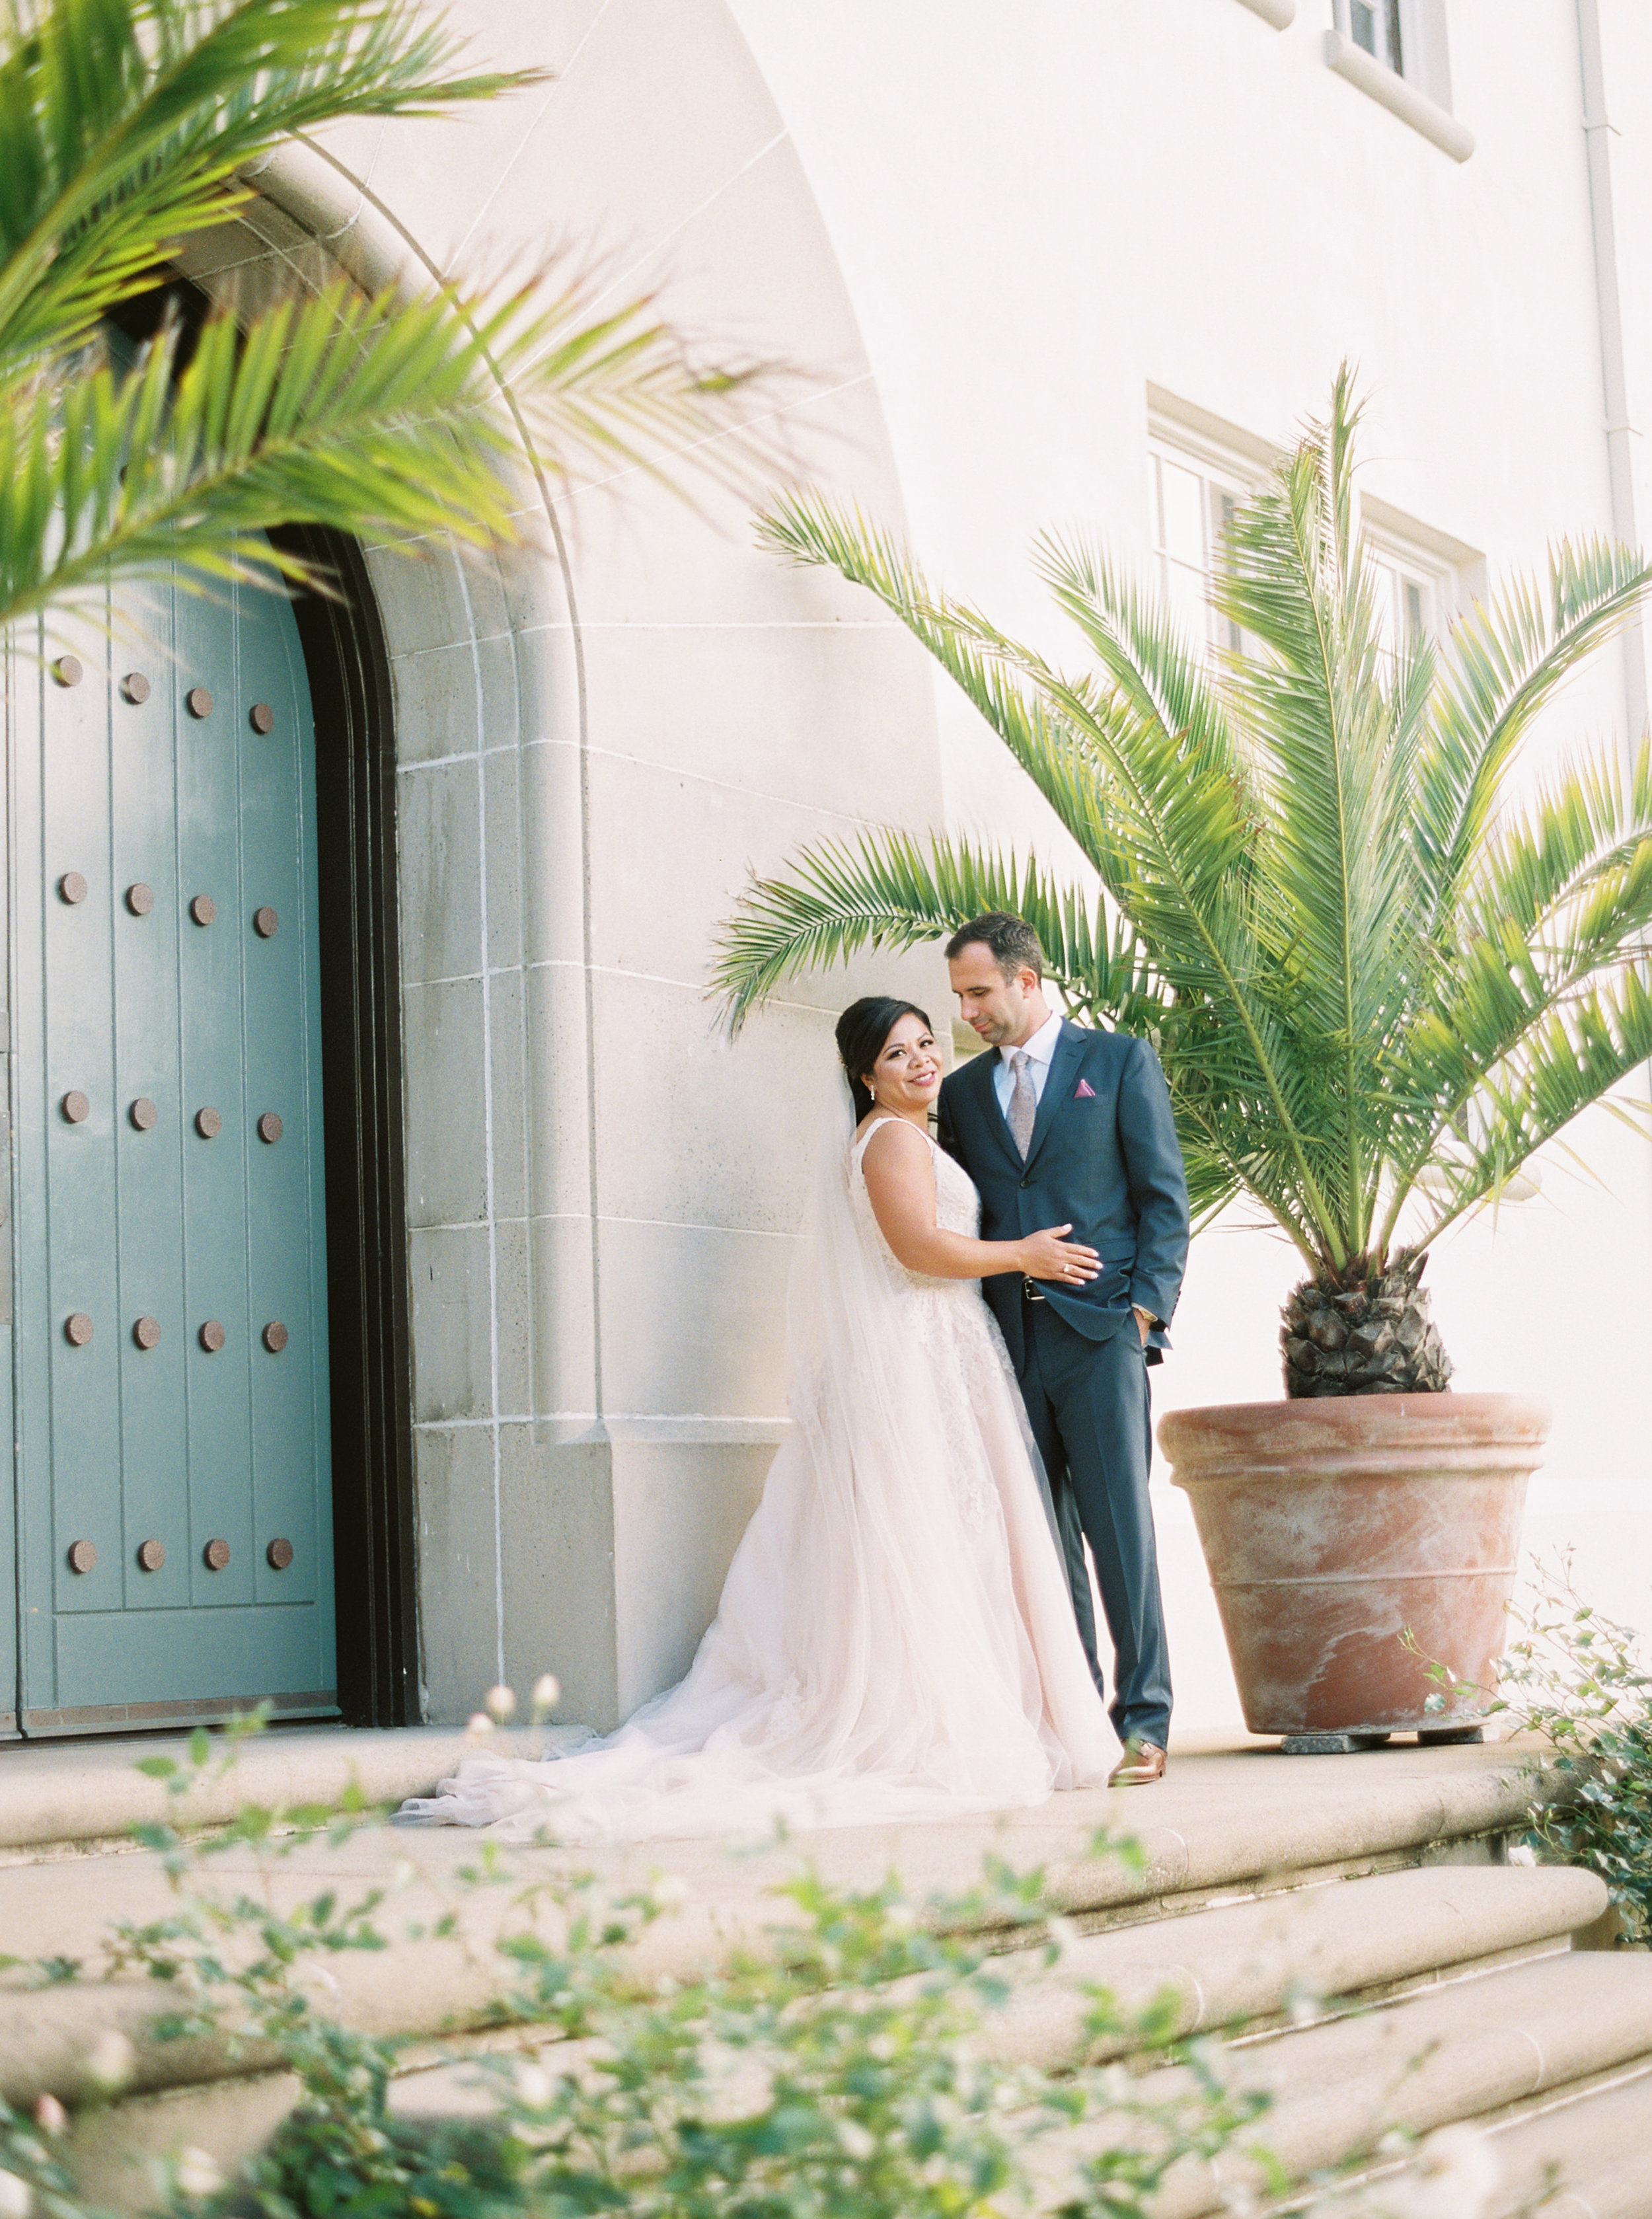 style-inspired-wedding-at-firehouse-8-in-san-francisco-120.jpg